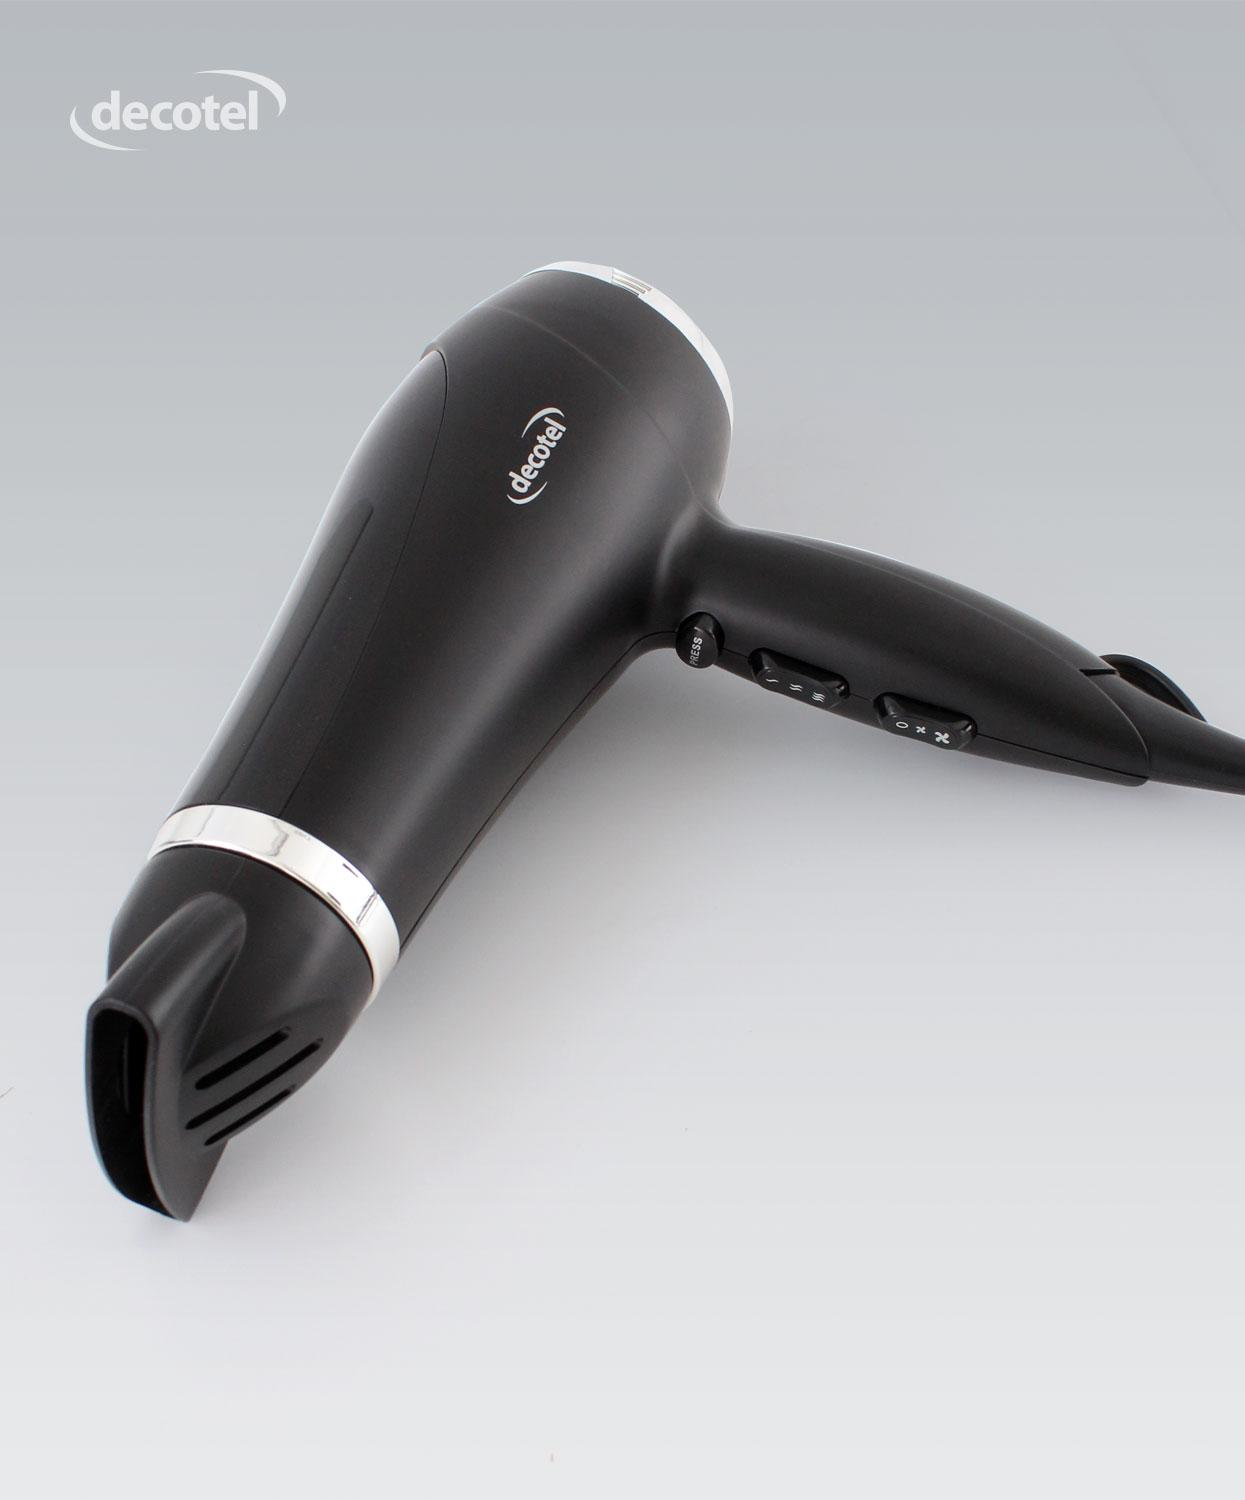 Hotel hairdryer with non-latching switch for safety